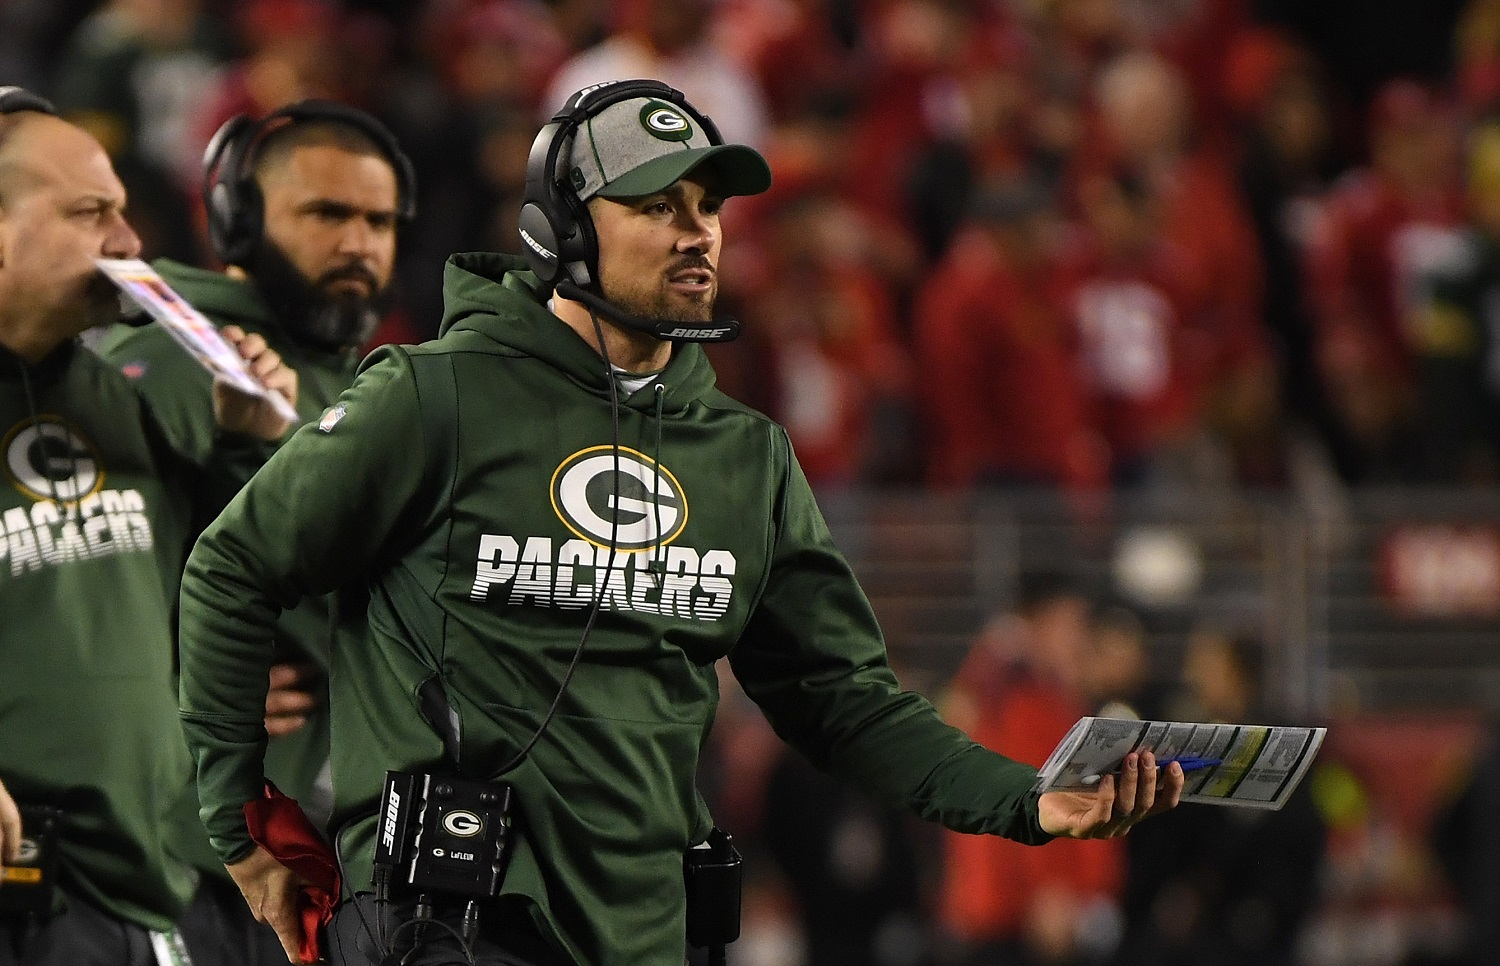 The Green Bay Packers have gone 13-3 in each of the past two seasons under Matt LaFleur. They will bolster their roster with 10 picks in the upcoming NFL draft. | Harry How/Getty Images